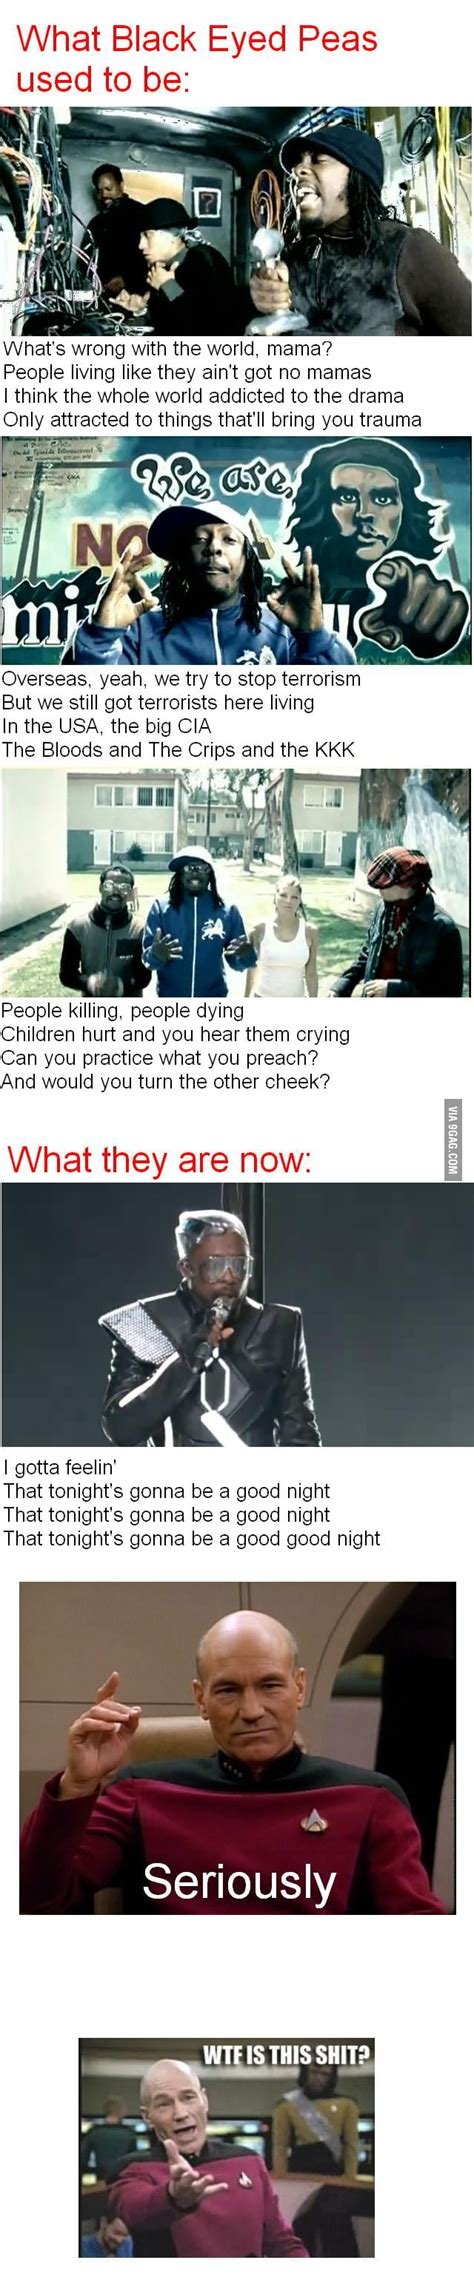 Seriously,what happened? - 9GAG